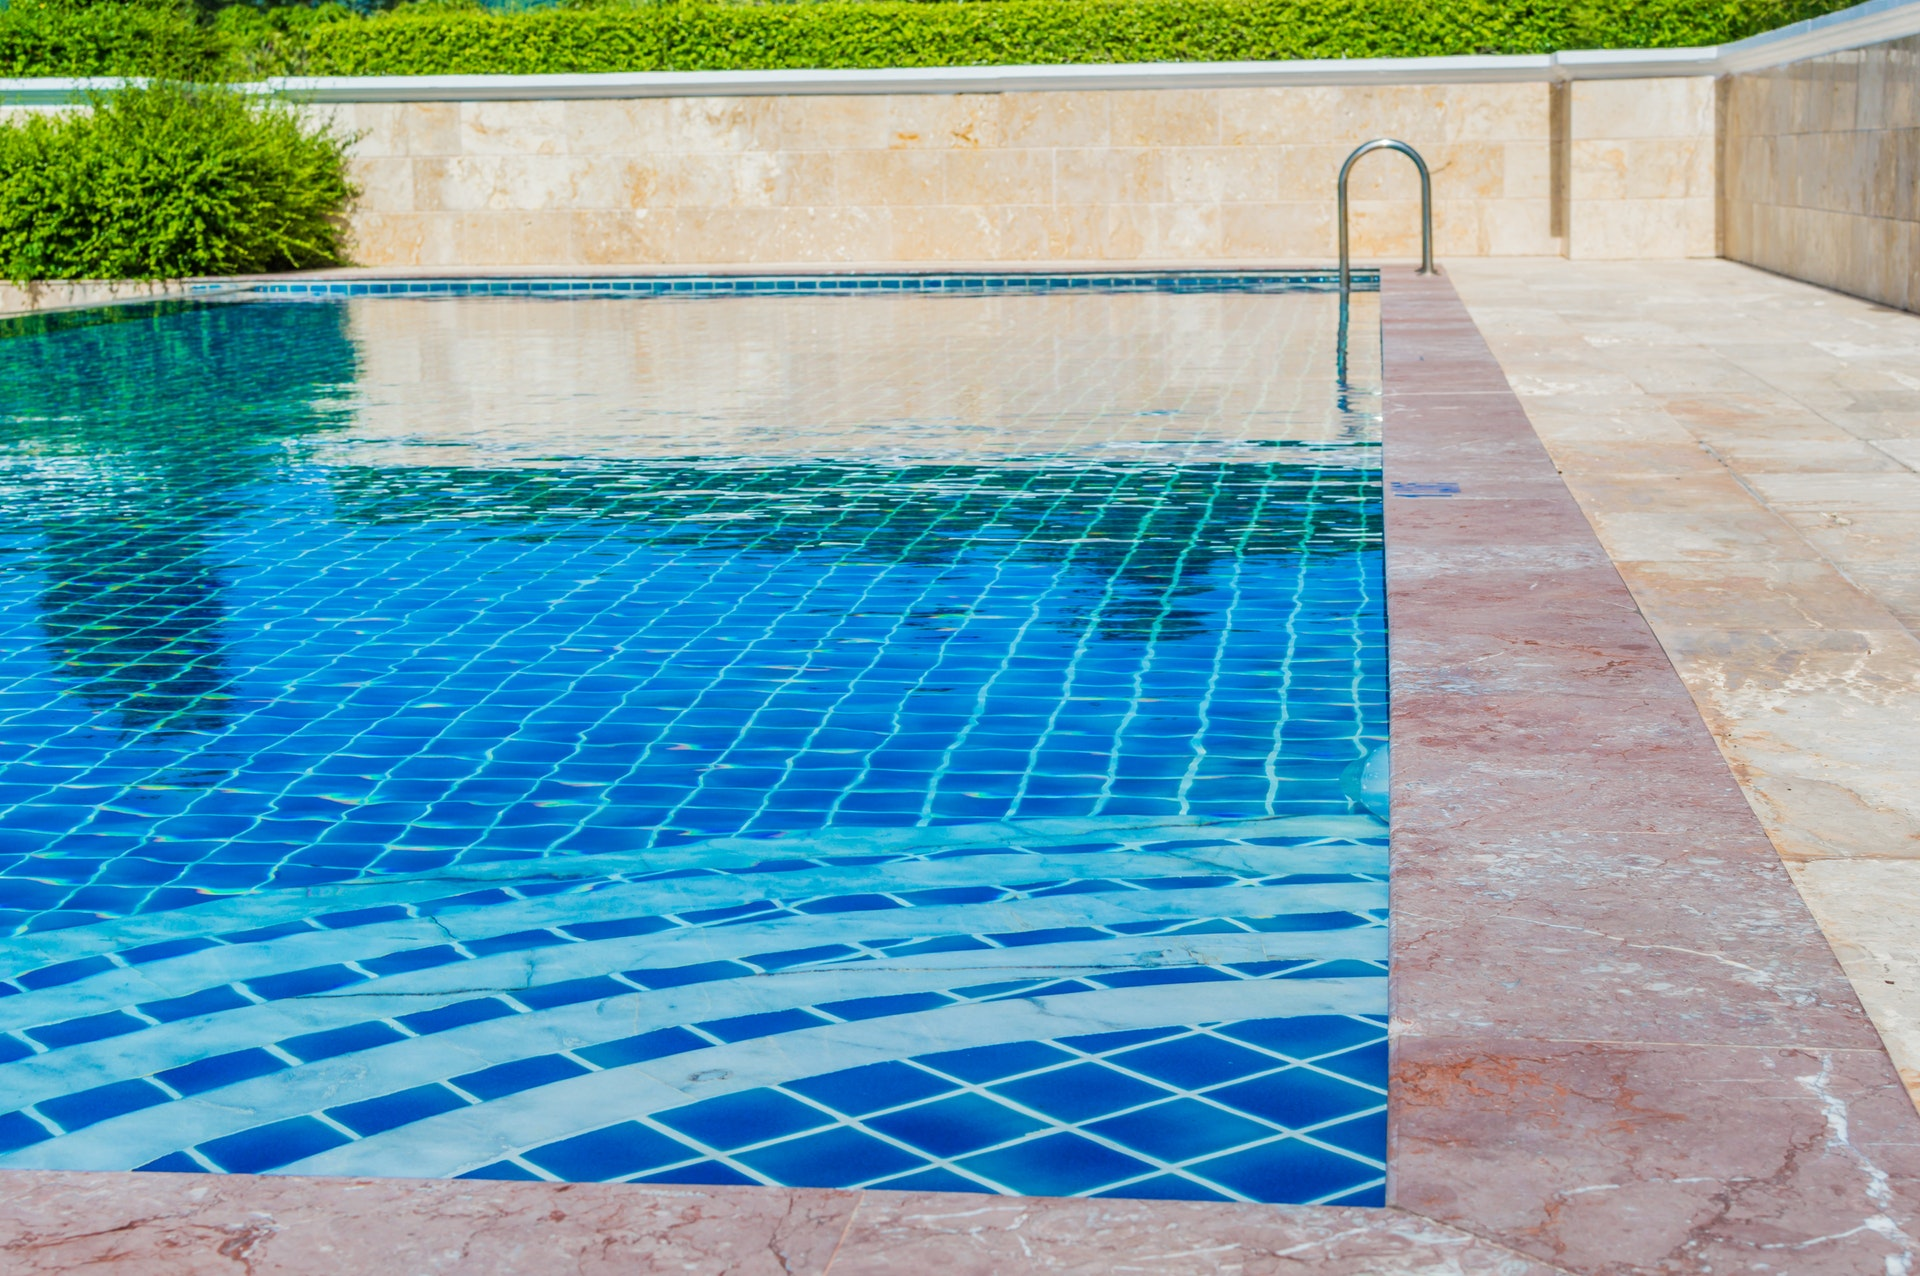 Pool Construction Company in Phoenix